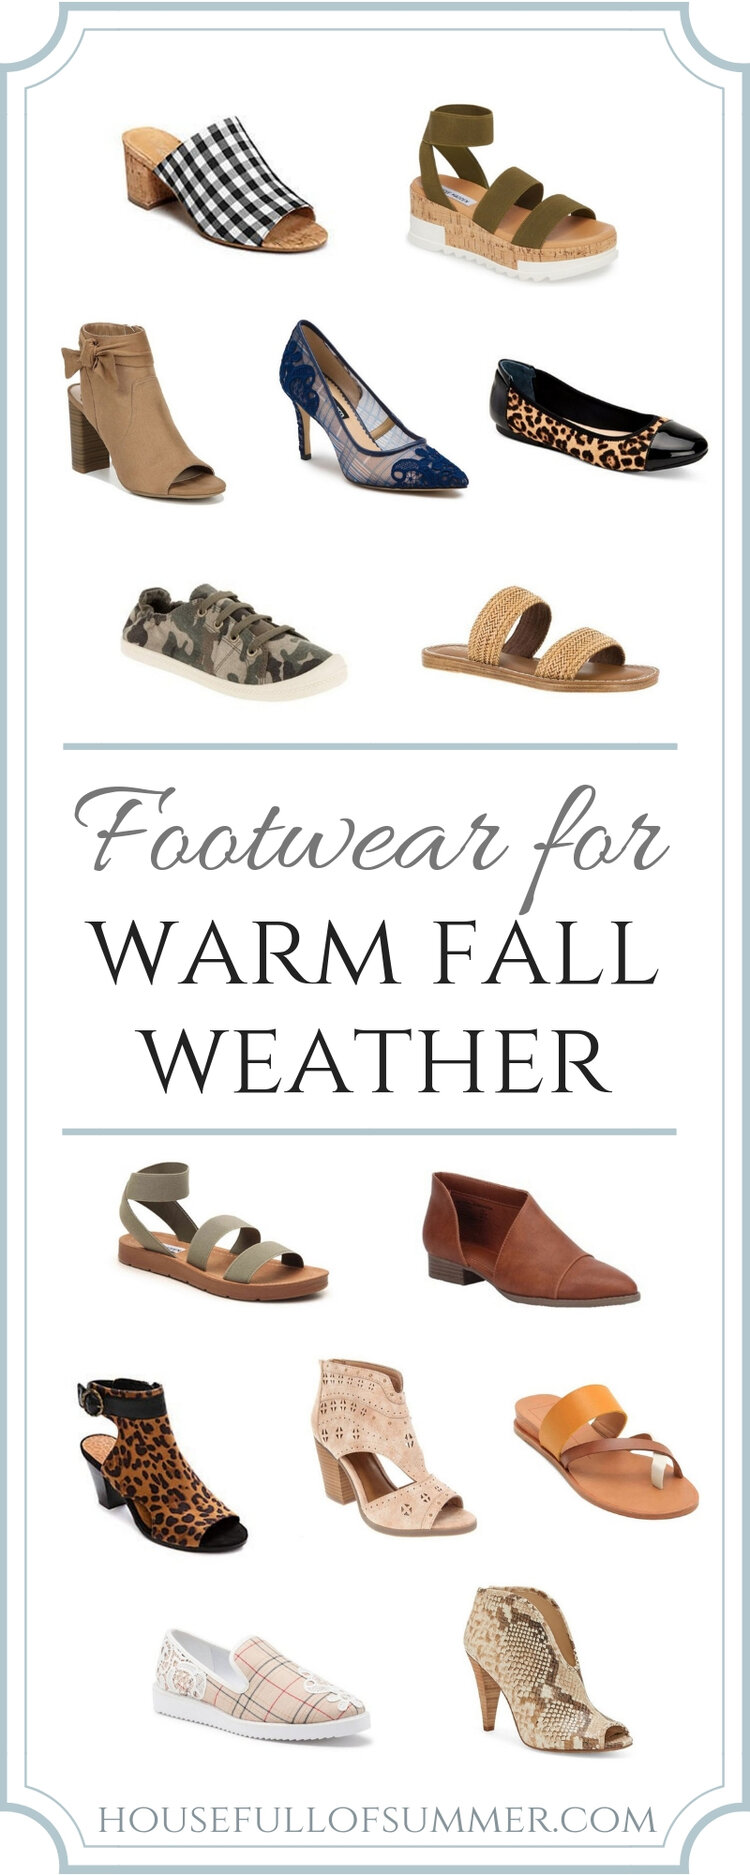 Footwear for Warm Fall Weather | House Full of Summer - Florida fashion, fall outfits, fall in the south, what to wear on a warm fall day, sandals for fall, peep toe booties, flats, leopard print flats, work wear, business casual #liketoknowit #housefullofsummer #shoes #shoeobsessed